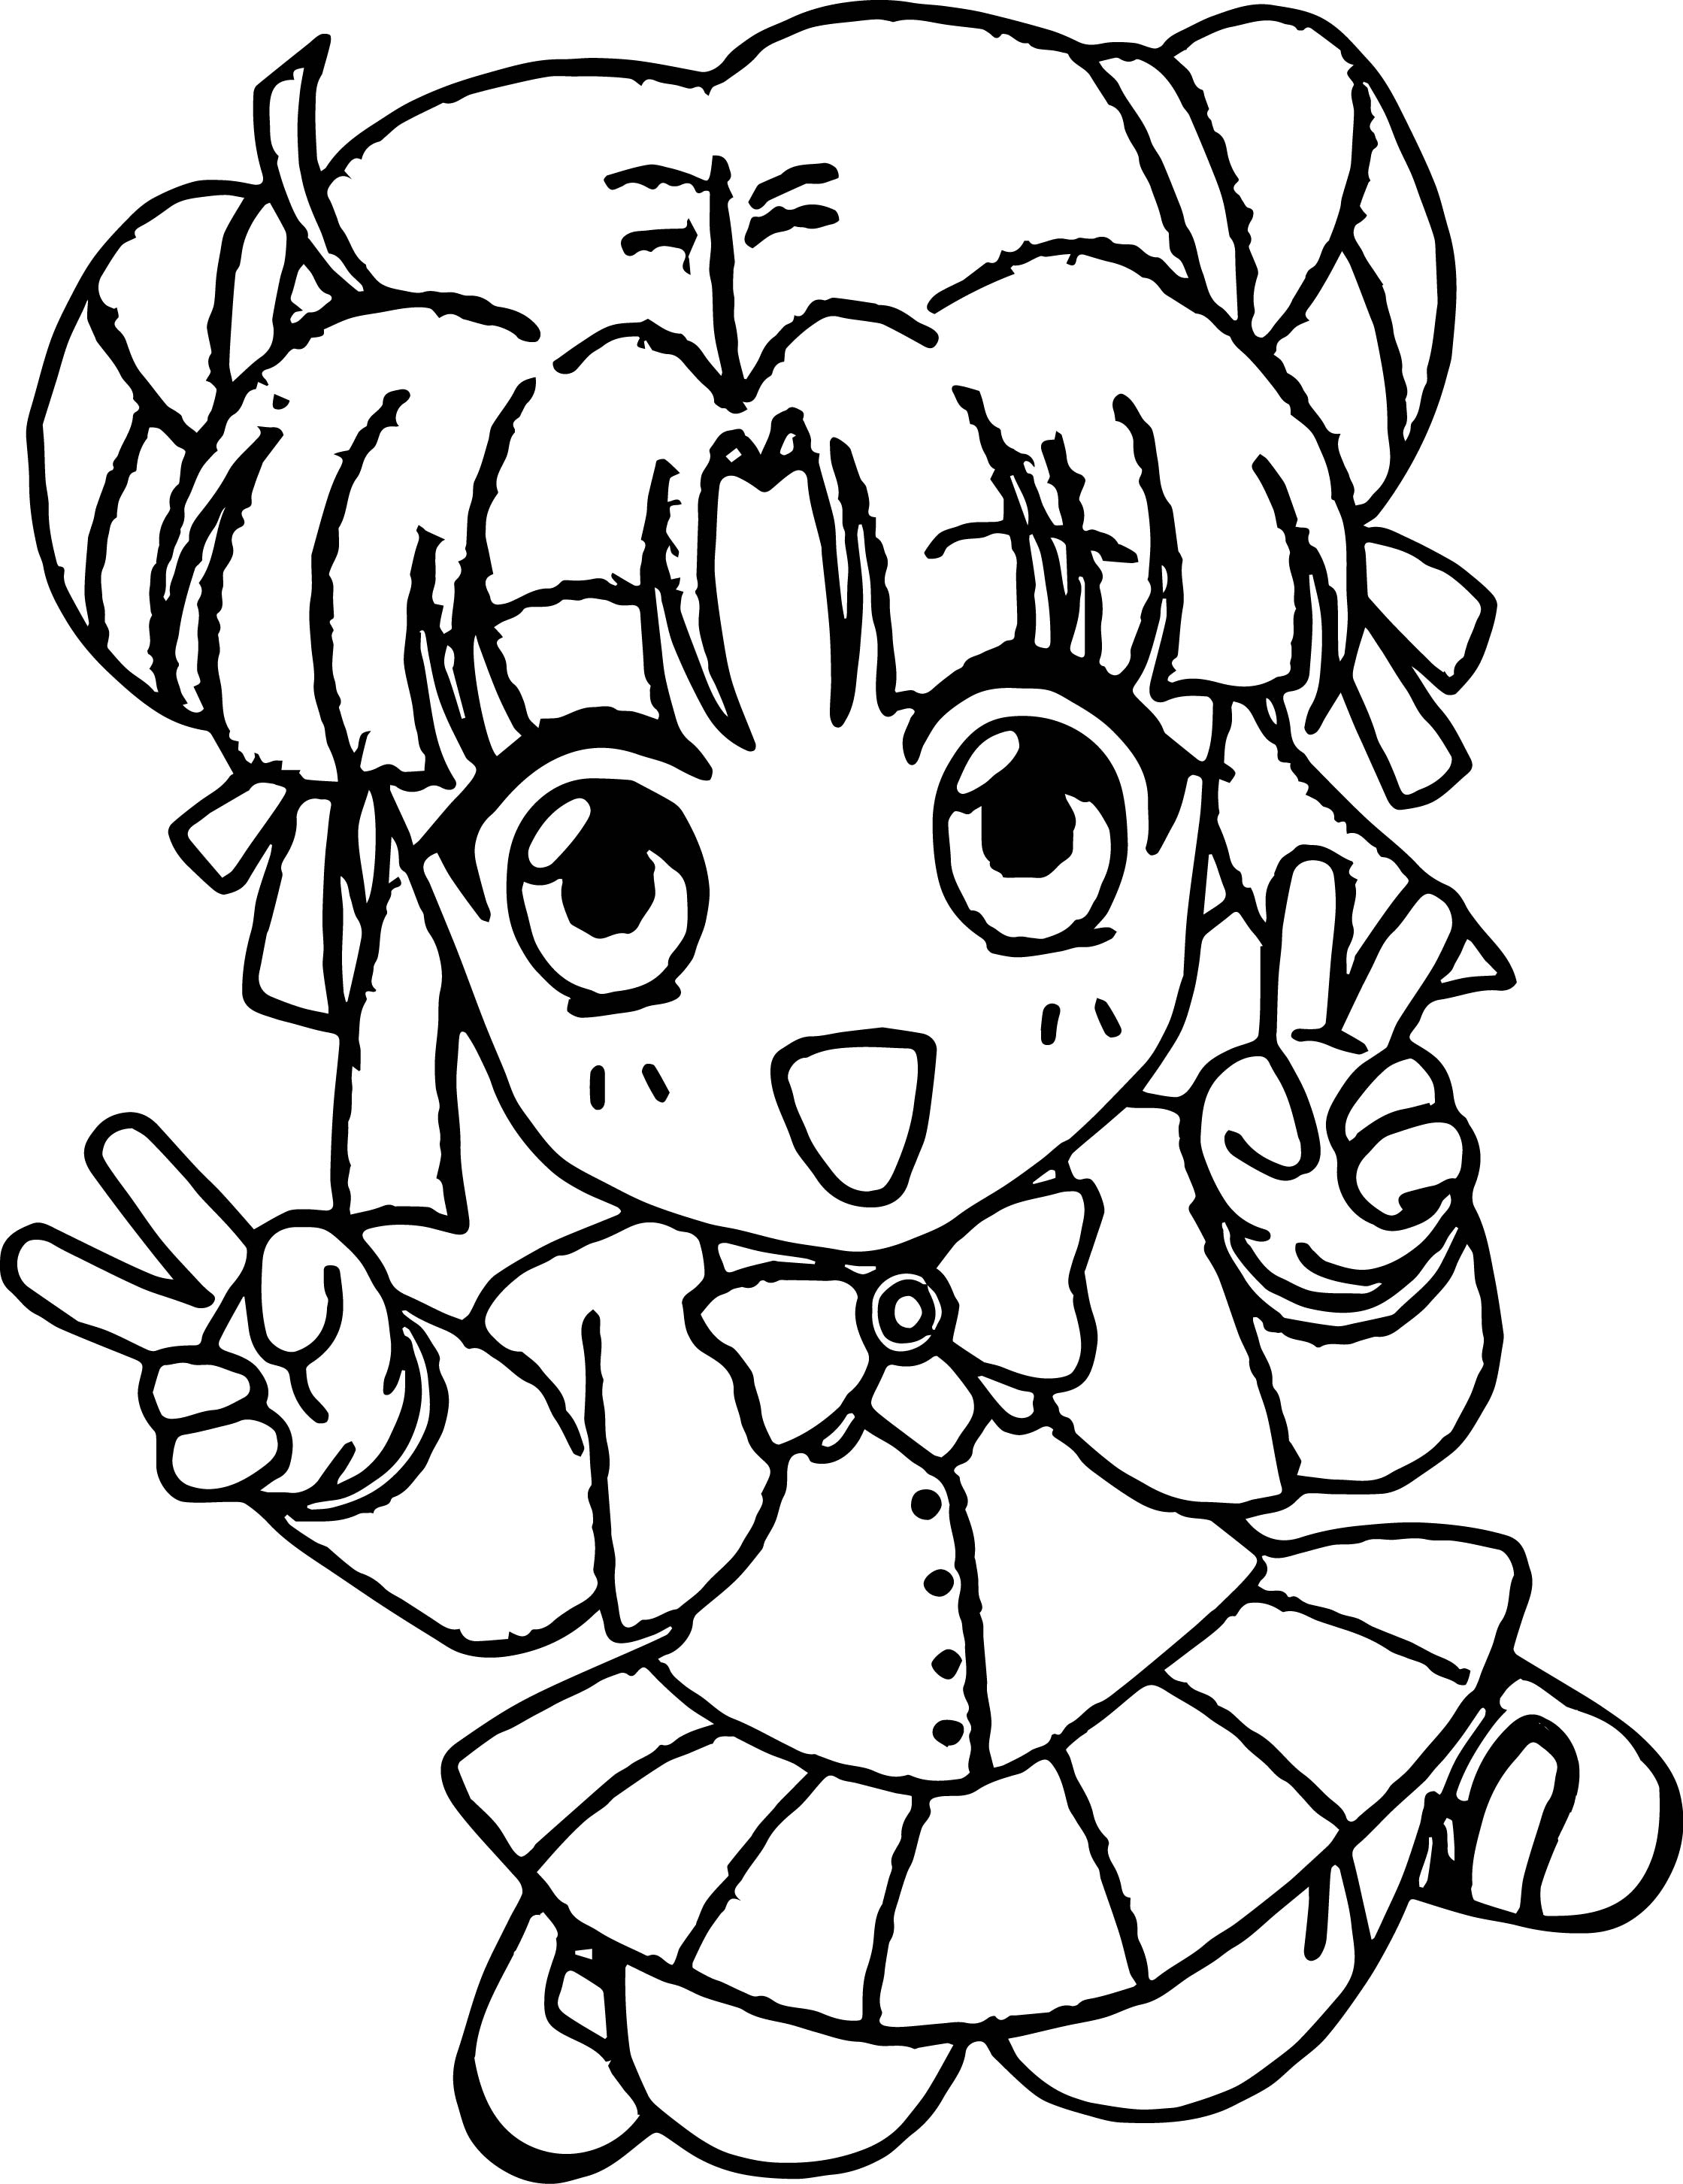 anime chibi boy coloring pages - photo#43